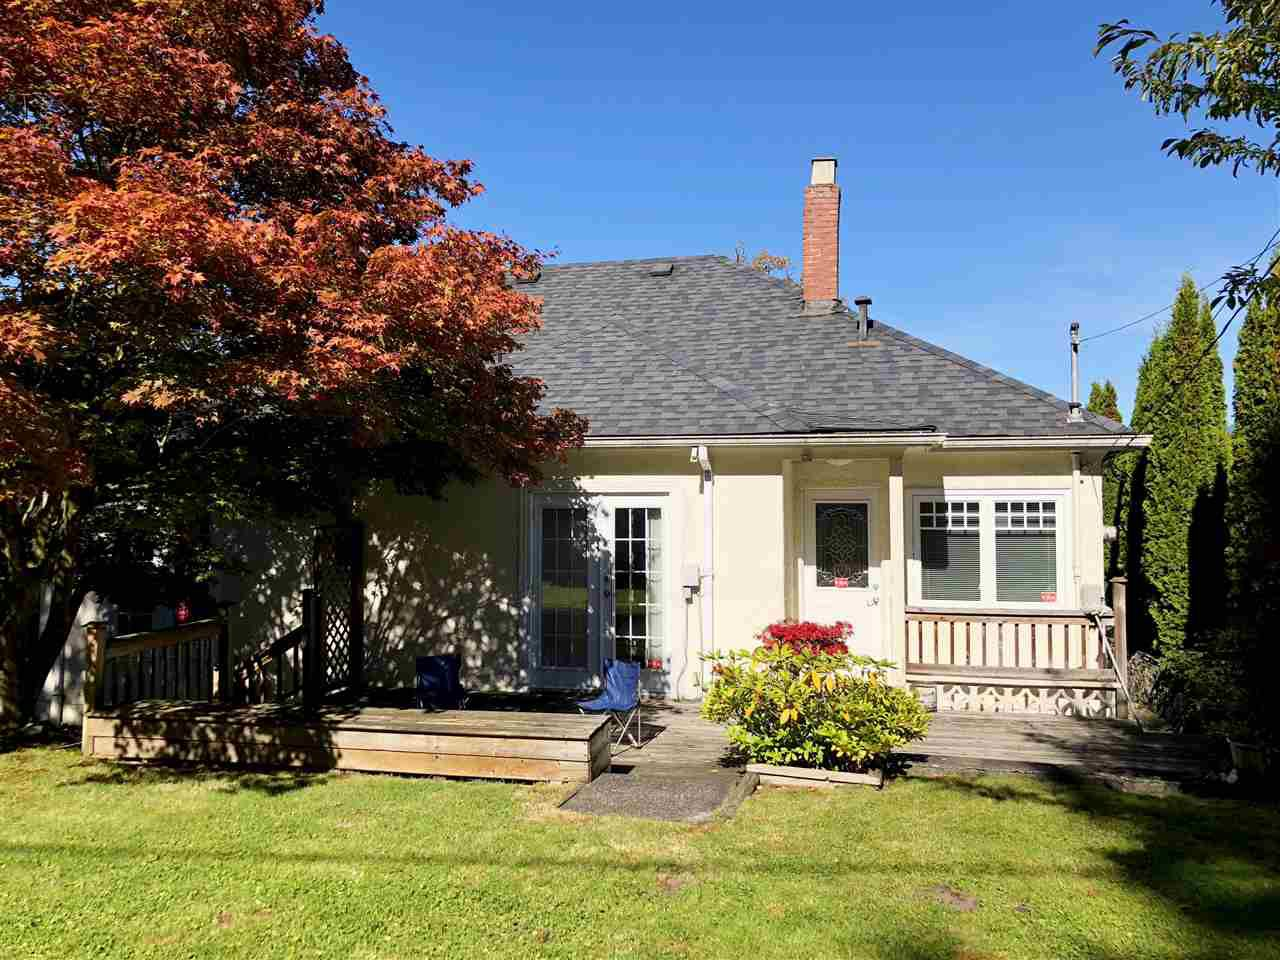 Main Photo: 2130 W 33RD Avenue in Vancouver: Quilchena House for sale (Vancouver West)  : MLS®# R2333019